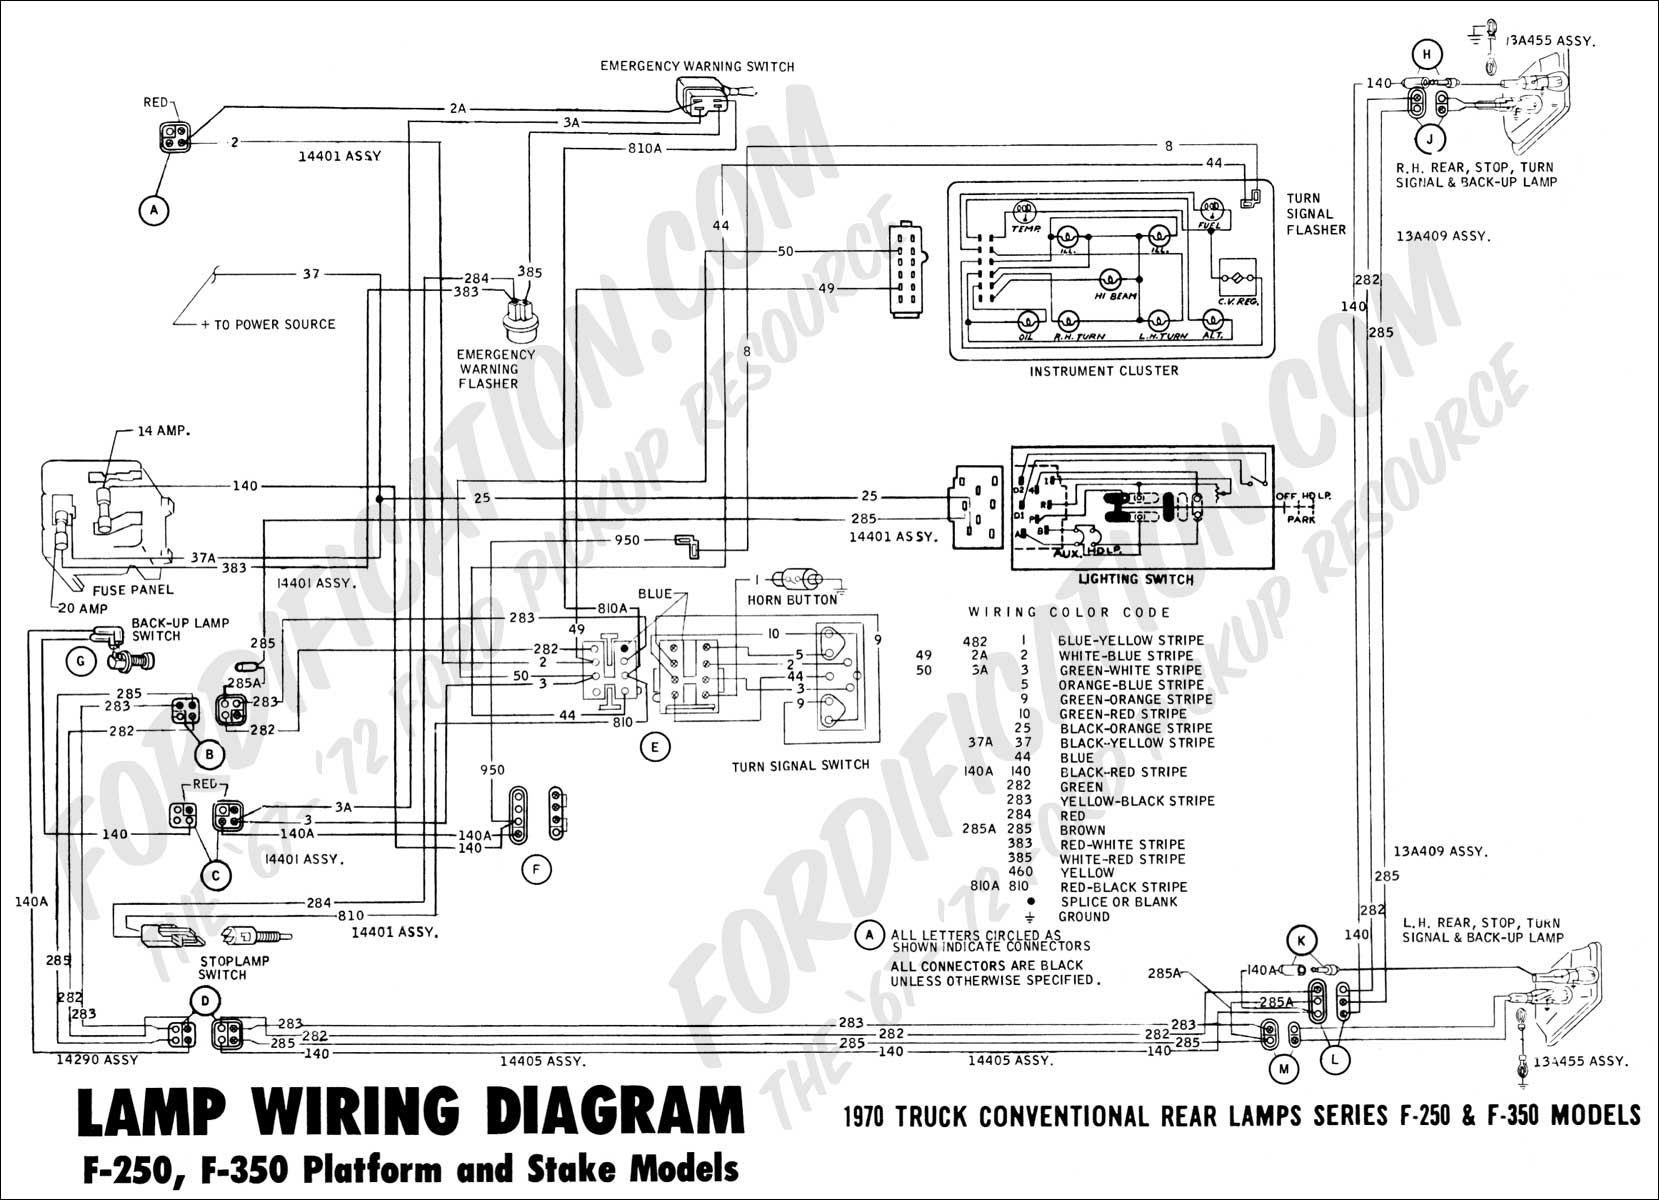 wiring diagram_70f250350_rearlamps01 1992 ford f 150 light wiring diagram on 1992 download wirning diagrams ford wiring schematics at eliteediting.co